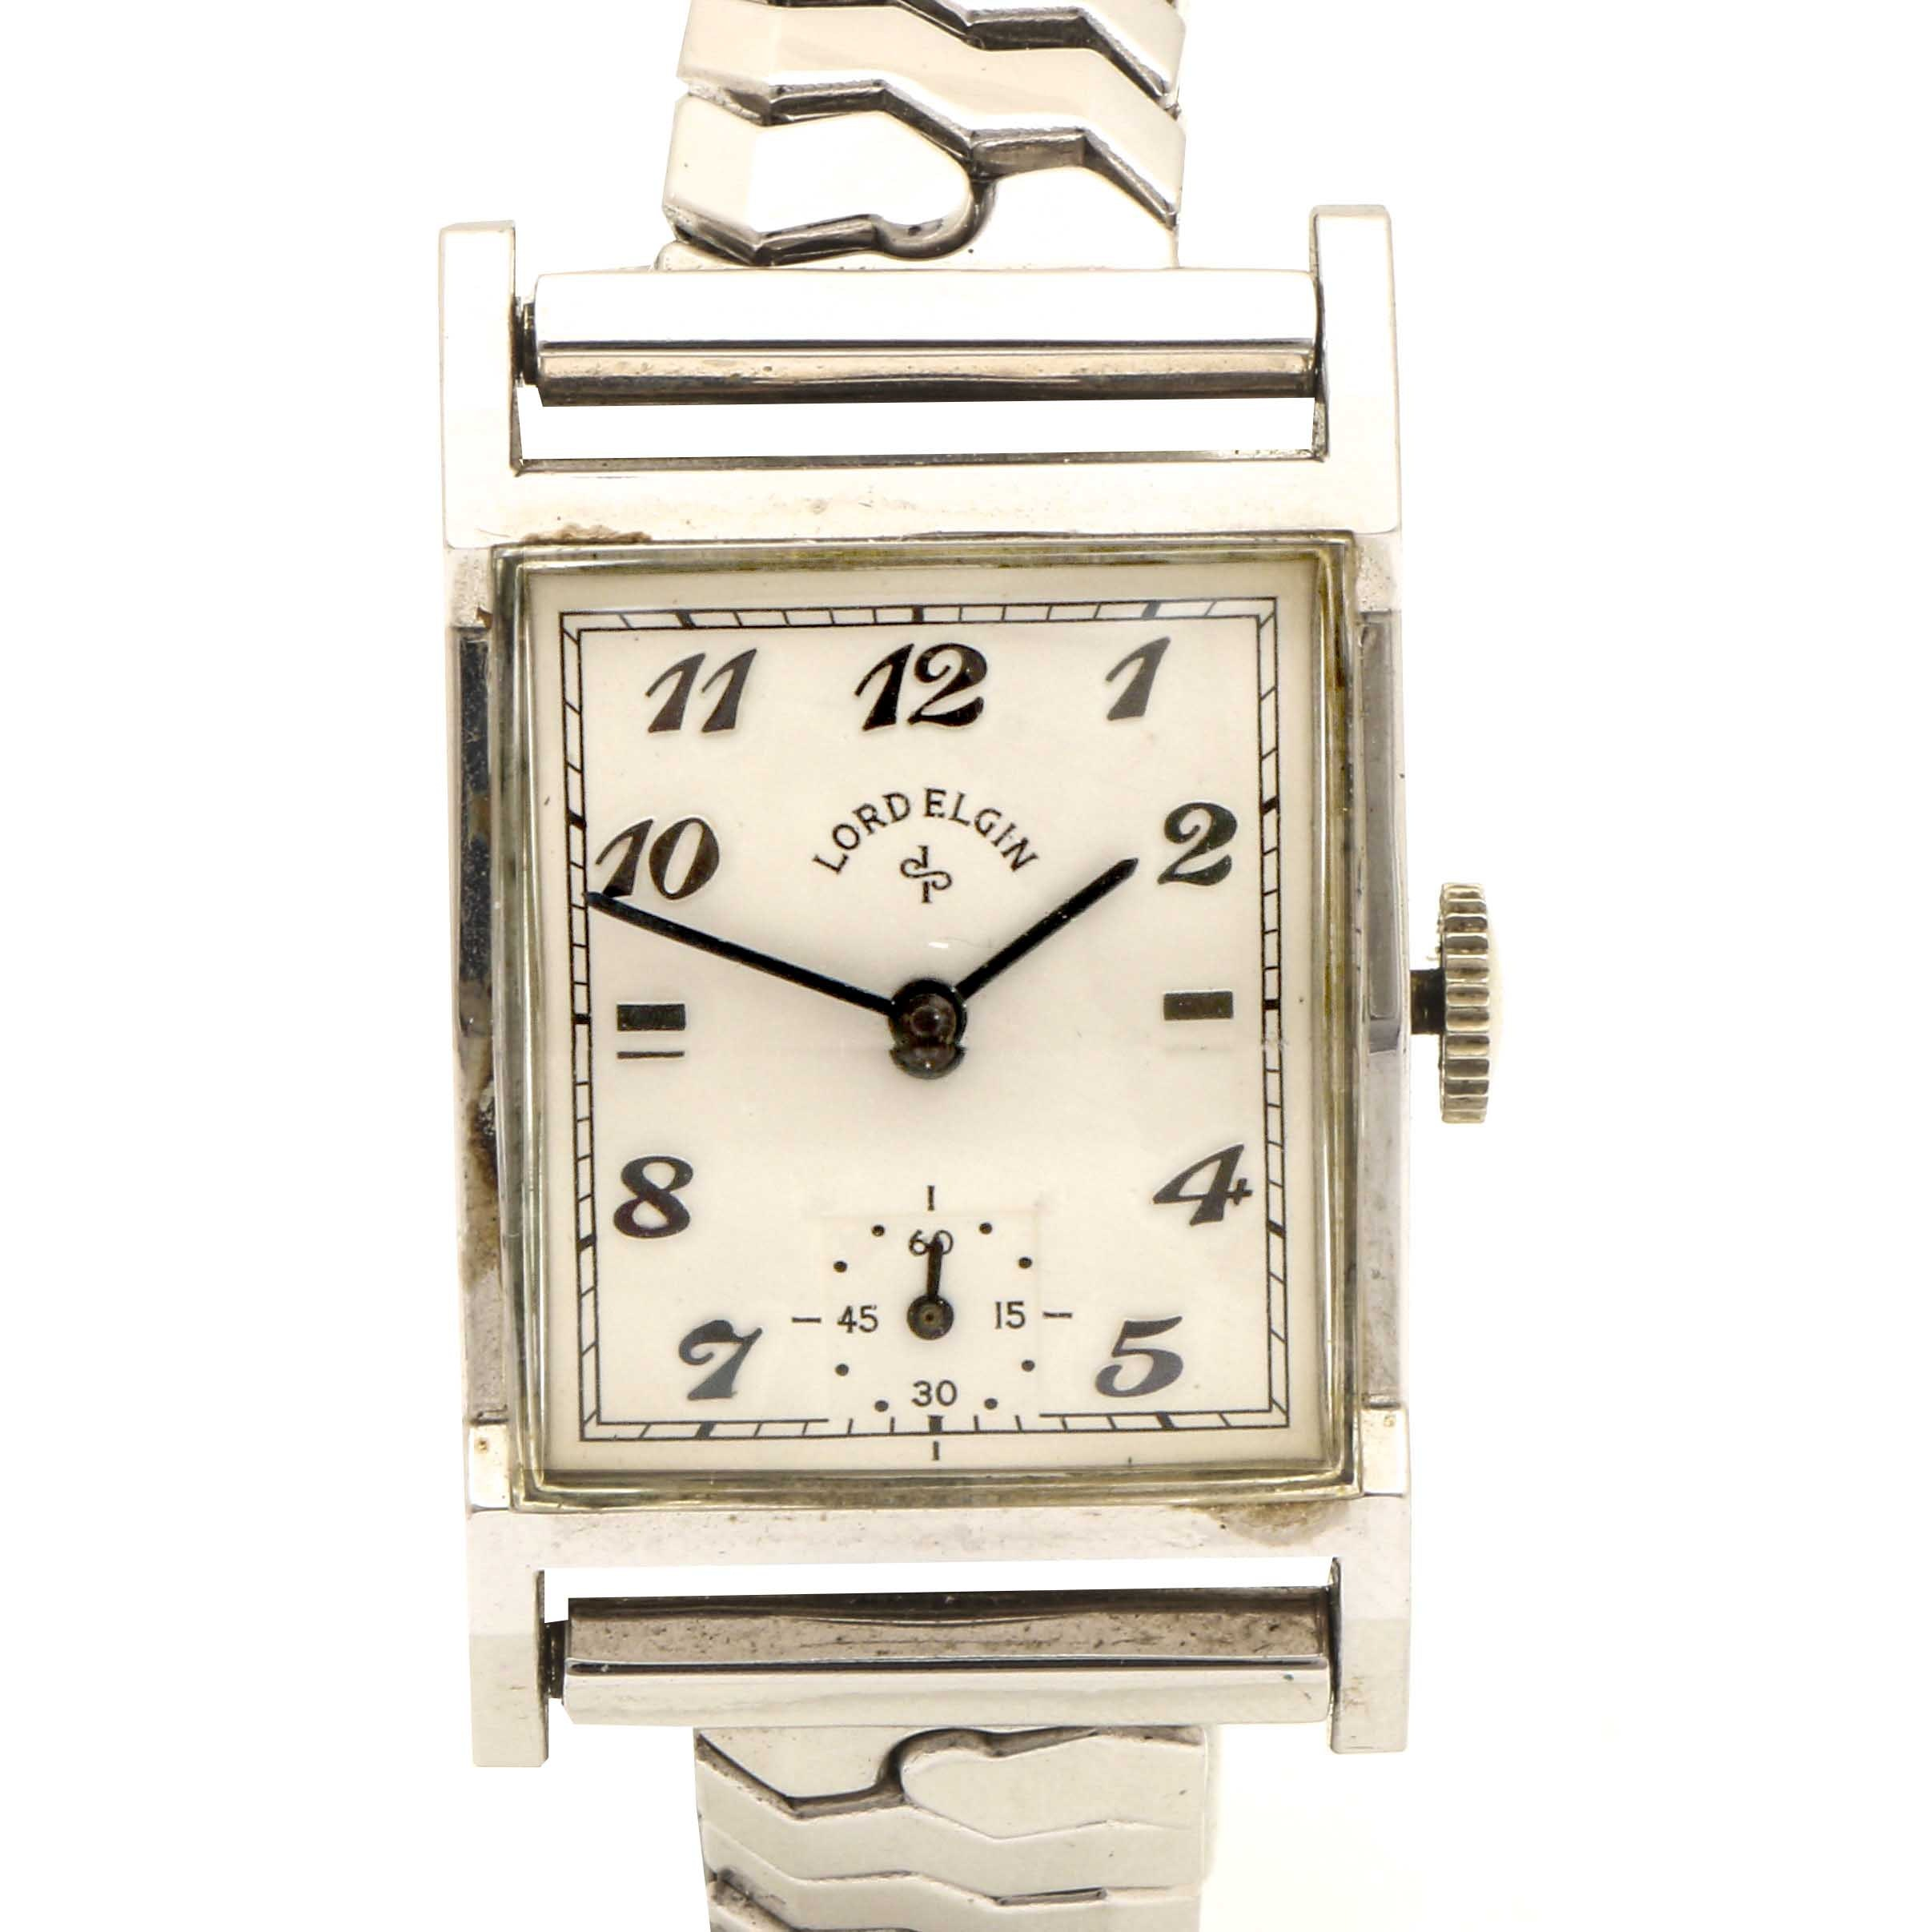 Lord Elgin 14K White Gold Filled Stem Wind Wristwatch